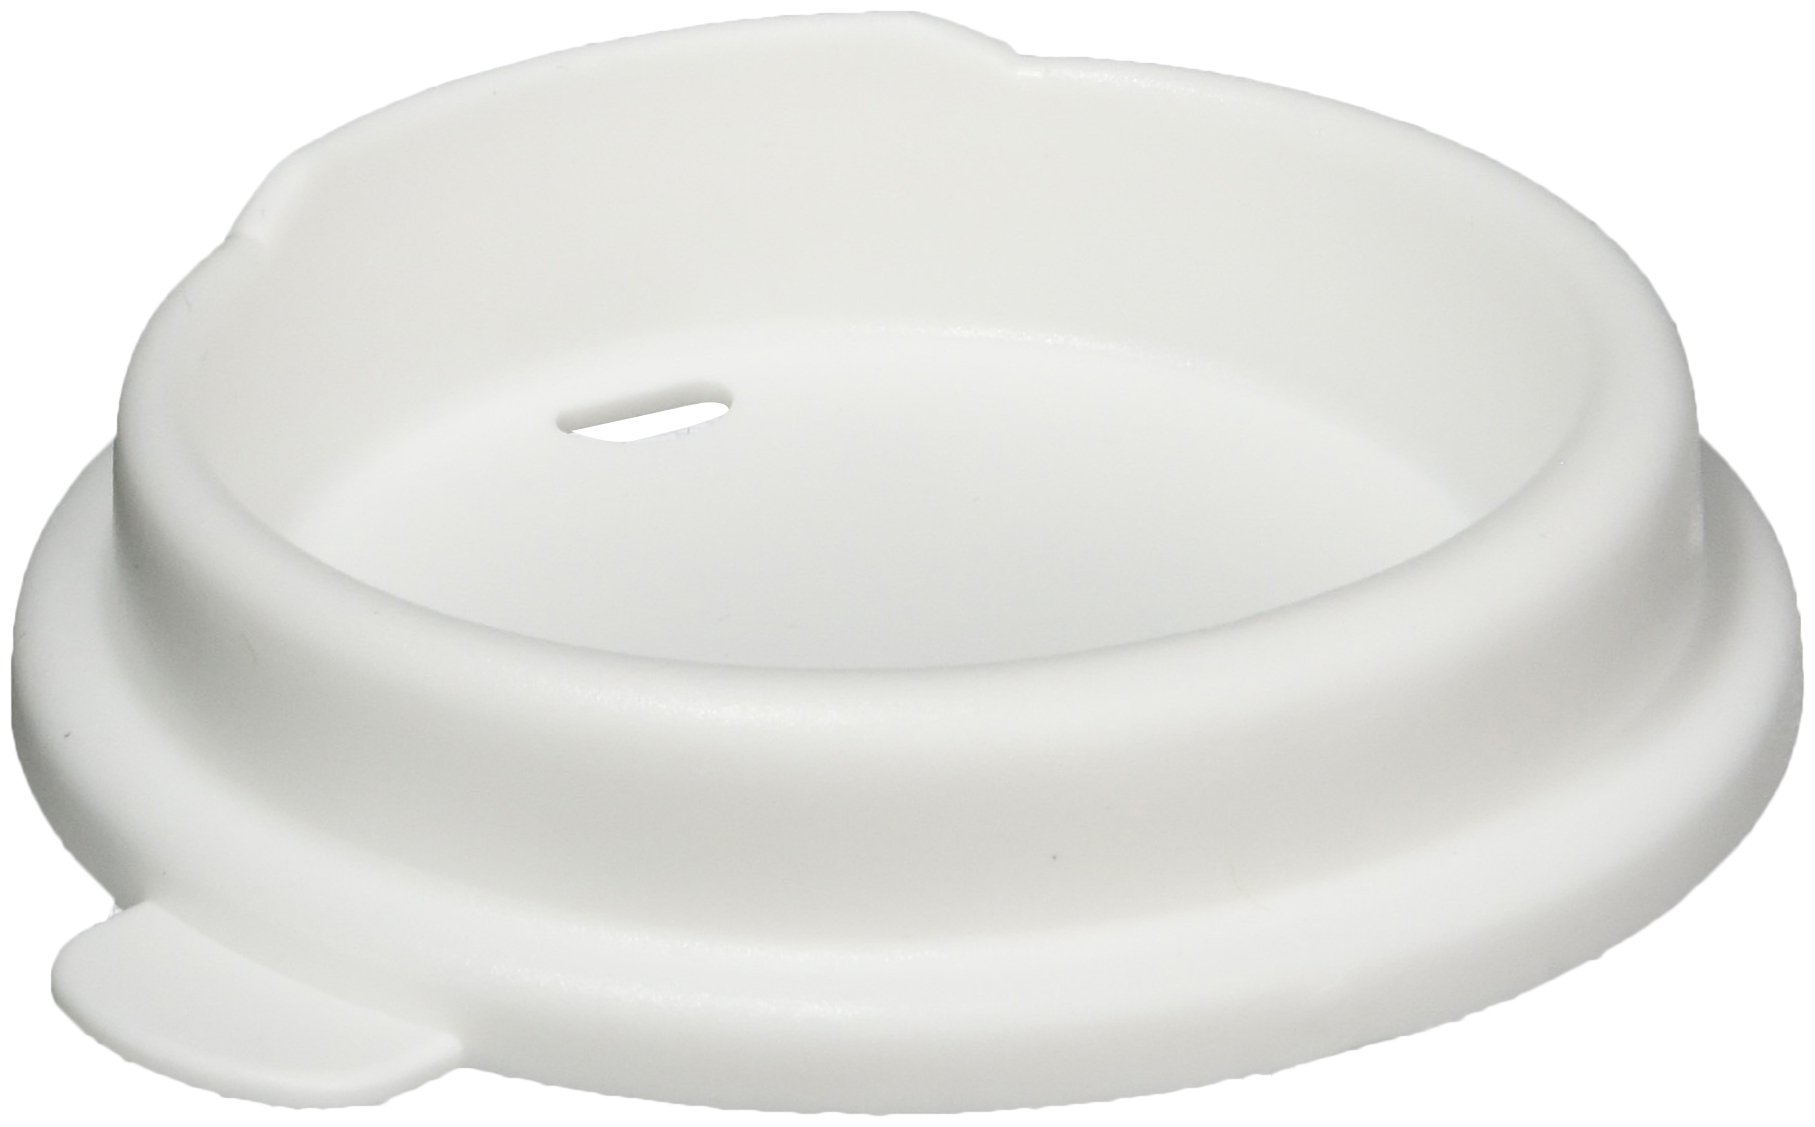 Sammons Preston Mug/Tumbler Lids, Package of 6, Drinking Aid Regulates Flow of Liquid to Prevent Splashes & Spills